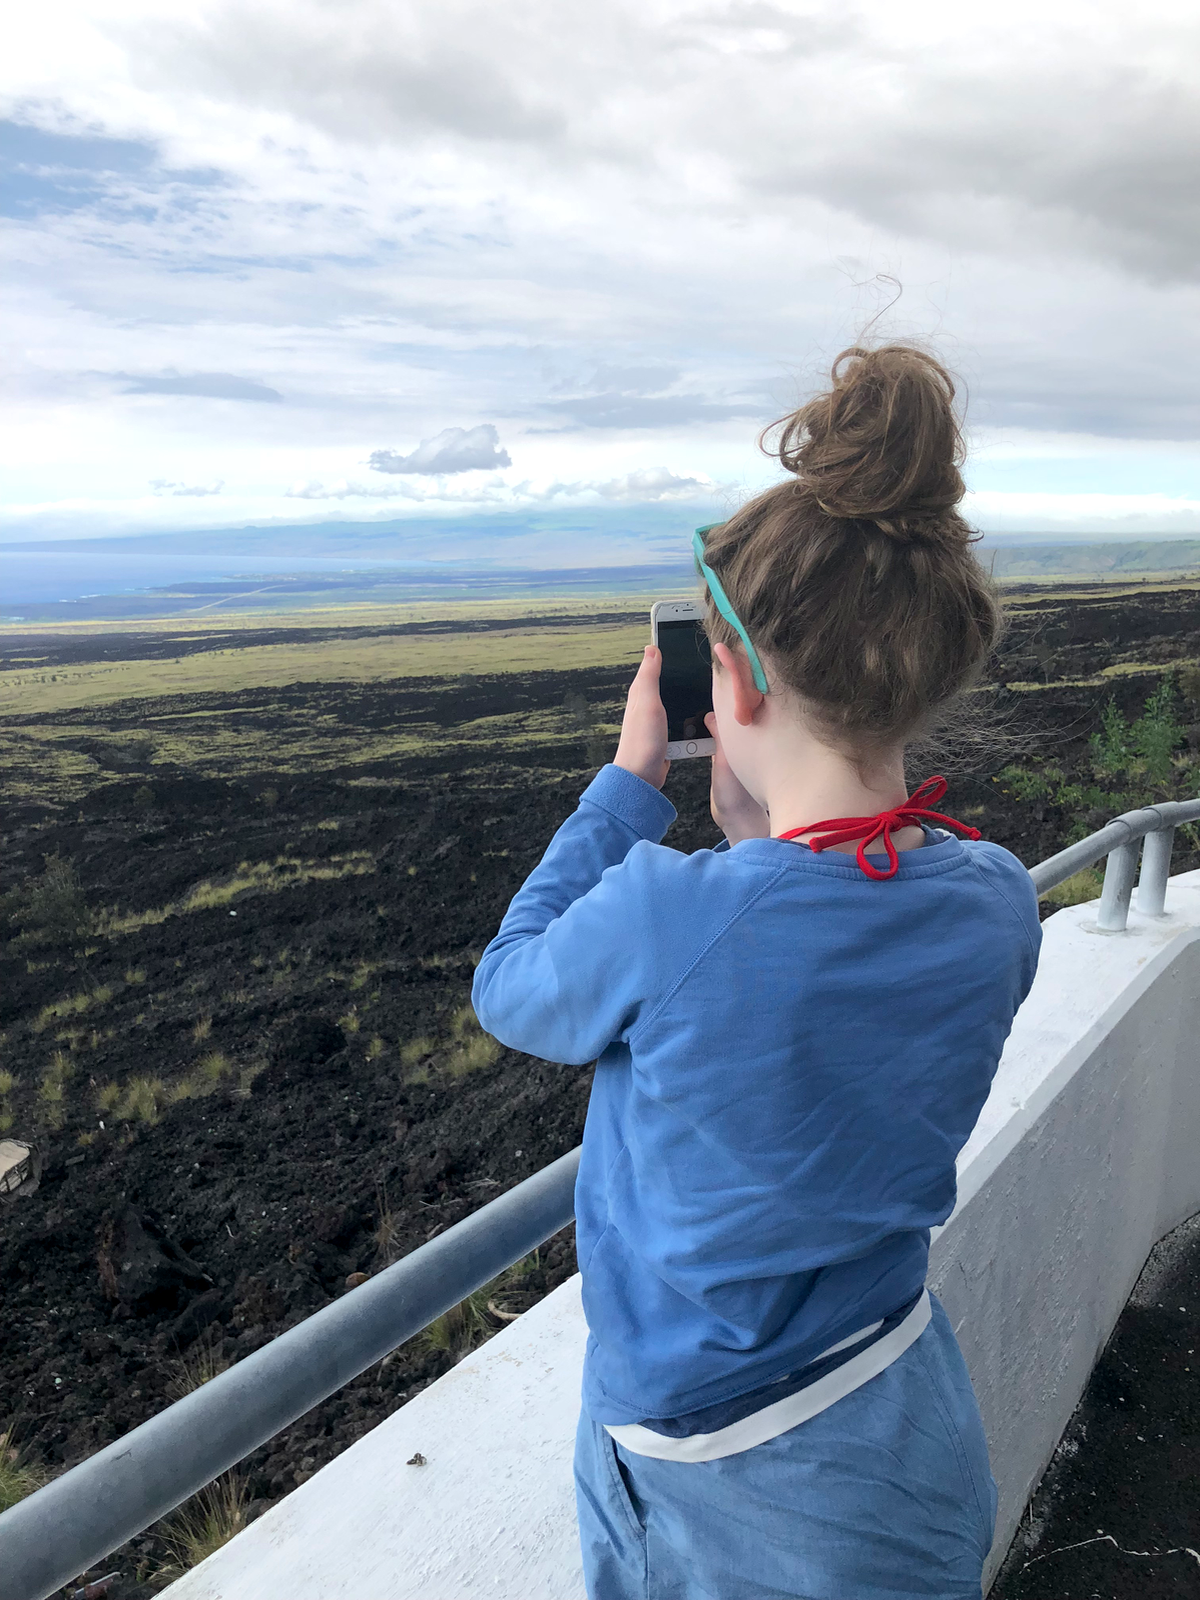 Mom and Daughter Trip to The Big Island of Hawaii featured by popular lifestyle blogger, Design Mom